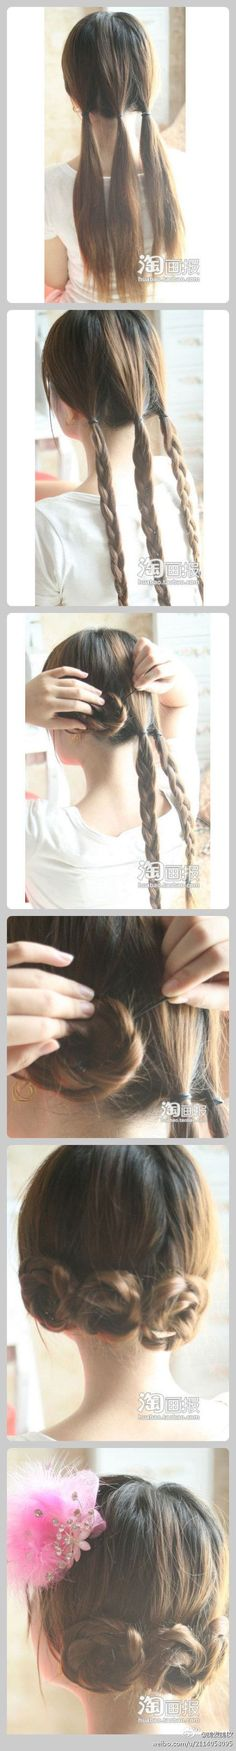 3 rosettes for girls hair. So pretty. I used to do something similar with 2 braids wrapped over each other with my hair. Can't wait for my hair to be long enough to do it again! 5 Minute Hairstyles, Braided Hairstyles, Cool Hairstyles, Easy Little Girl Hairstyles, Hairstyle Ideas, Tips Belleza, Love Hair, Hair Day, Hair Designs